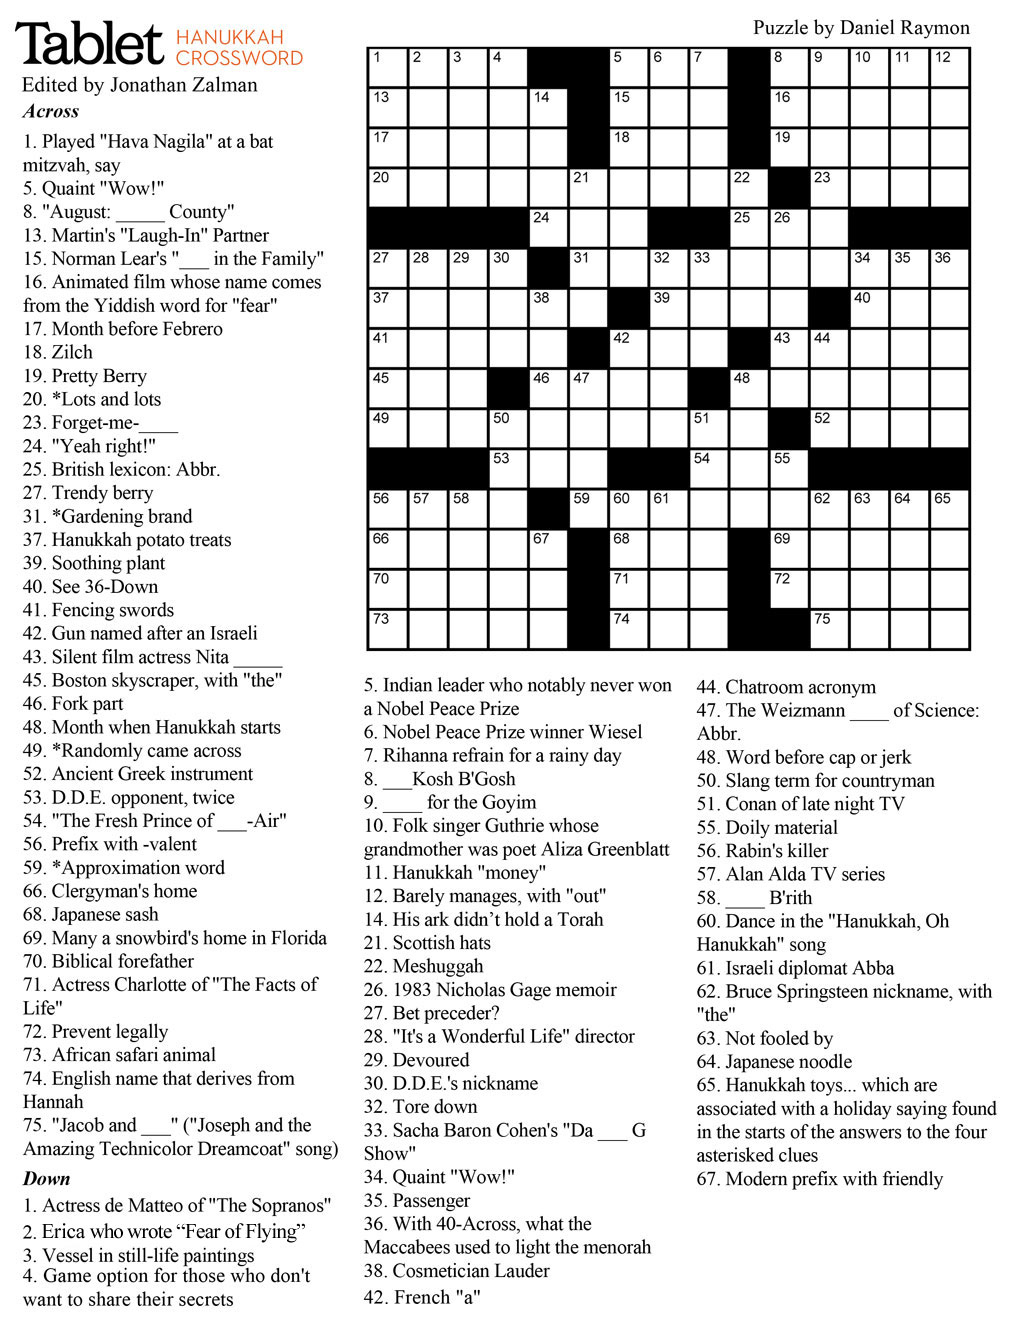 Wind Down With Our Hanukkah Crossword Puzzle! – Tablet Magazine - Printable Crossword New York Times